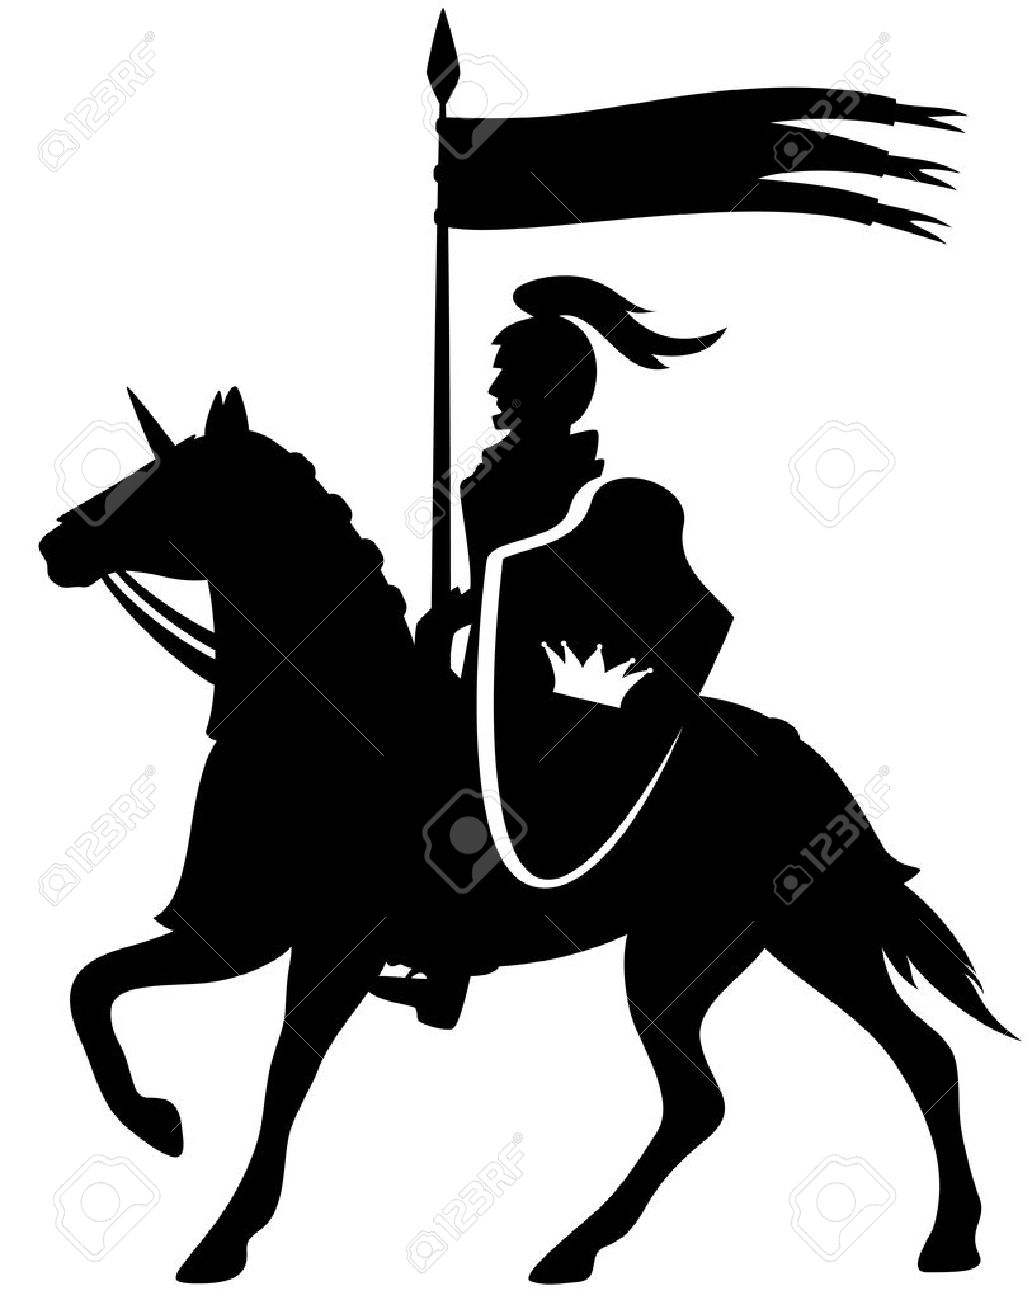 royal knight with a crown shield riding a horse - black vector silhouette on white - 29291904